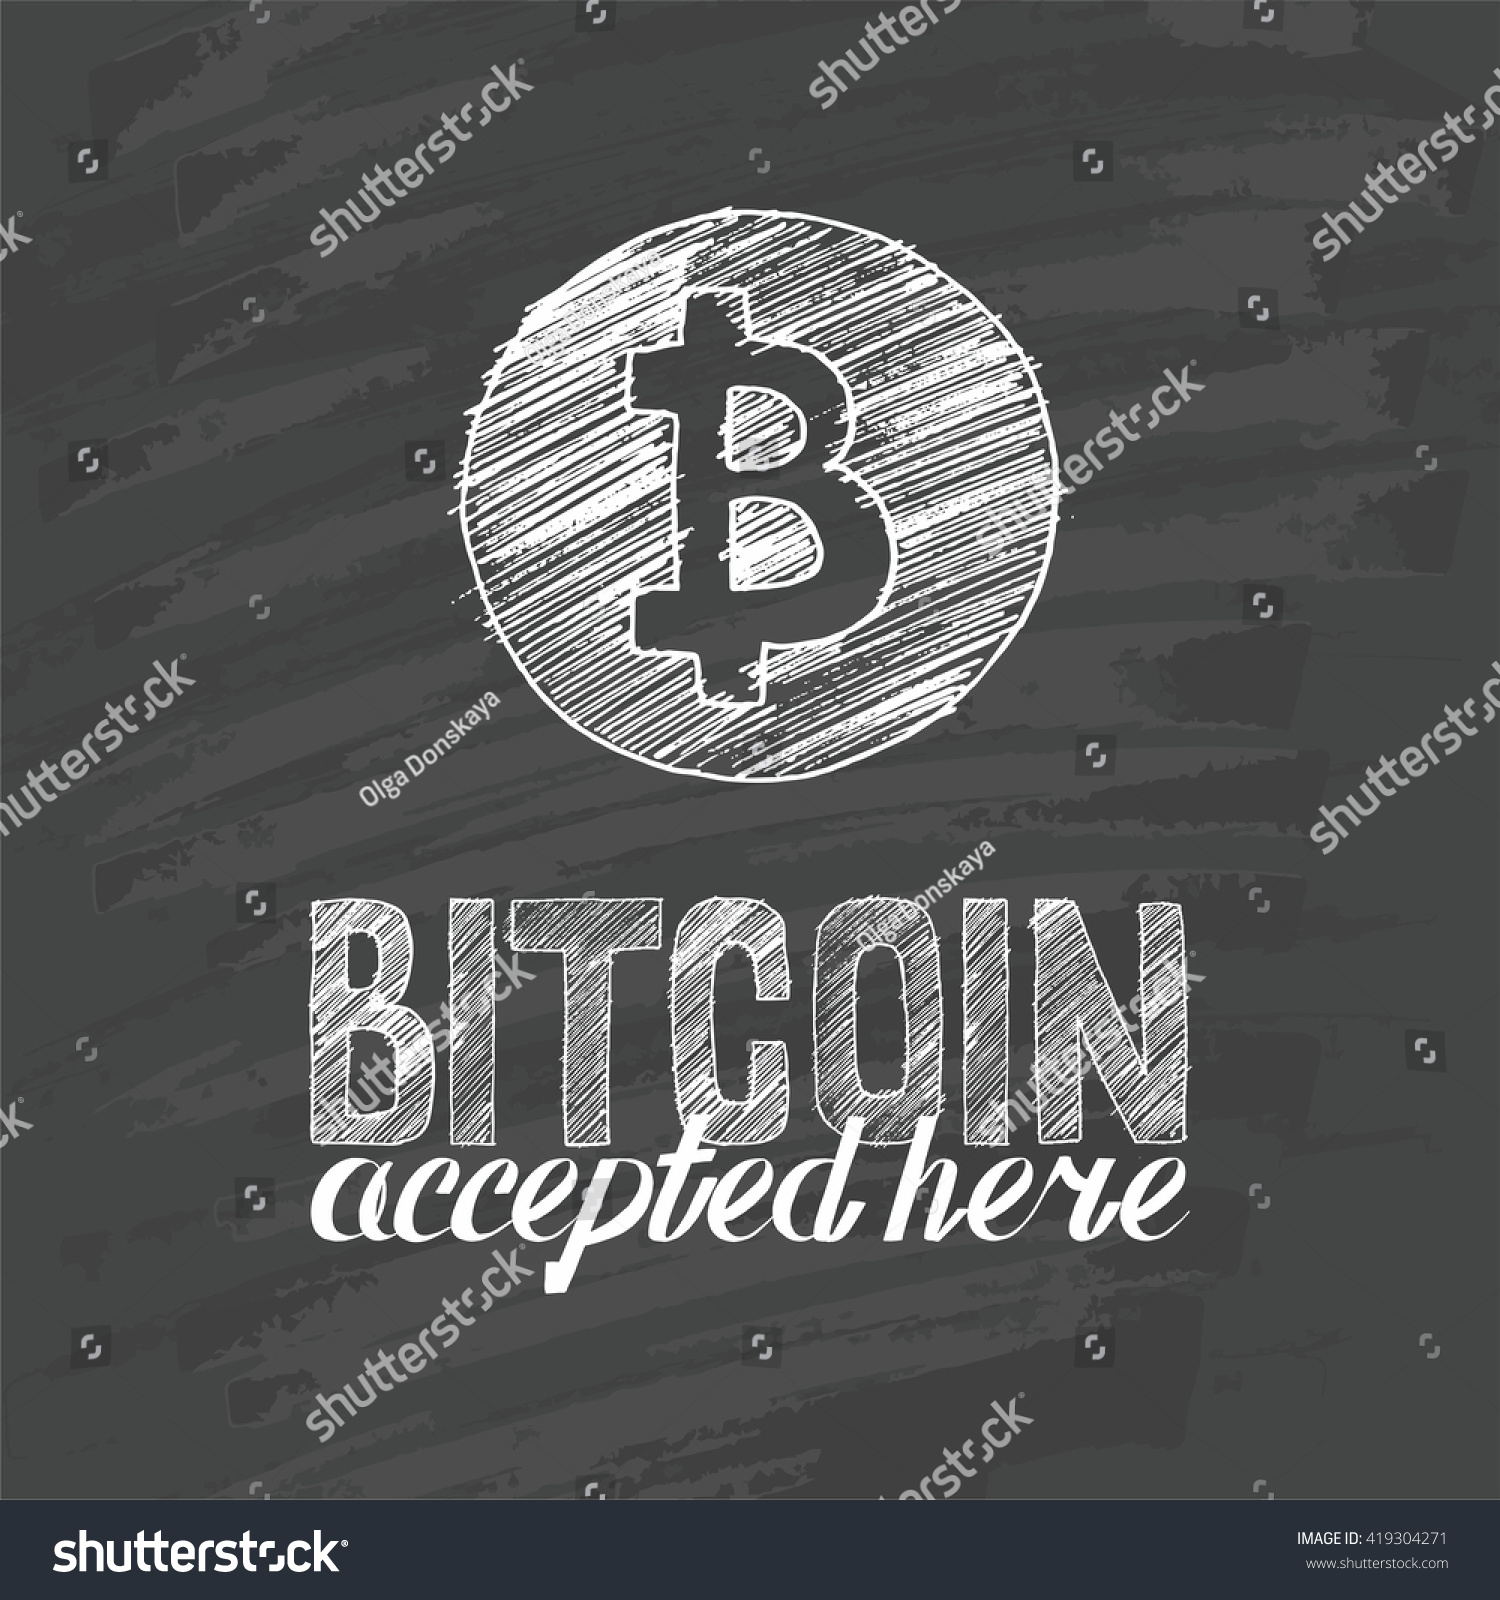 Hand drawn bitcoin symbol letters bitcoin stock vector 419304271 hand drawn bitcoin symbol and letters bitcoin accepted here biocorpaavc Choice Image